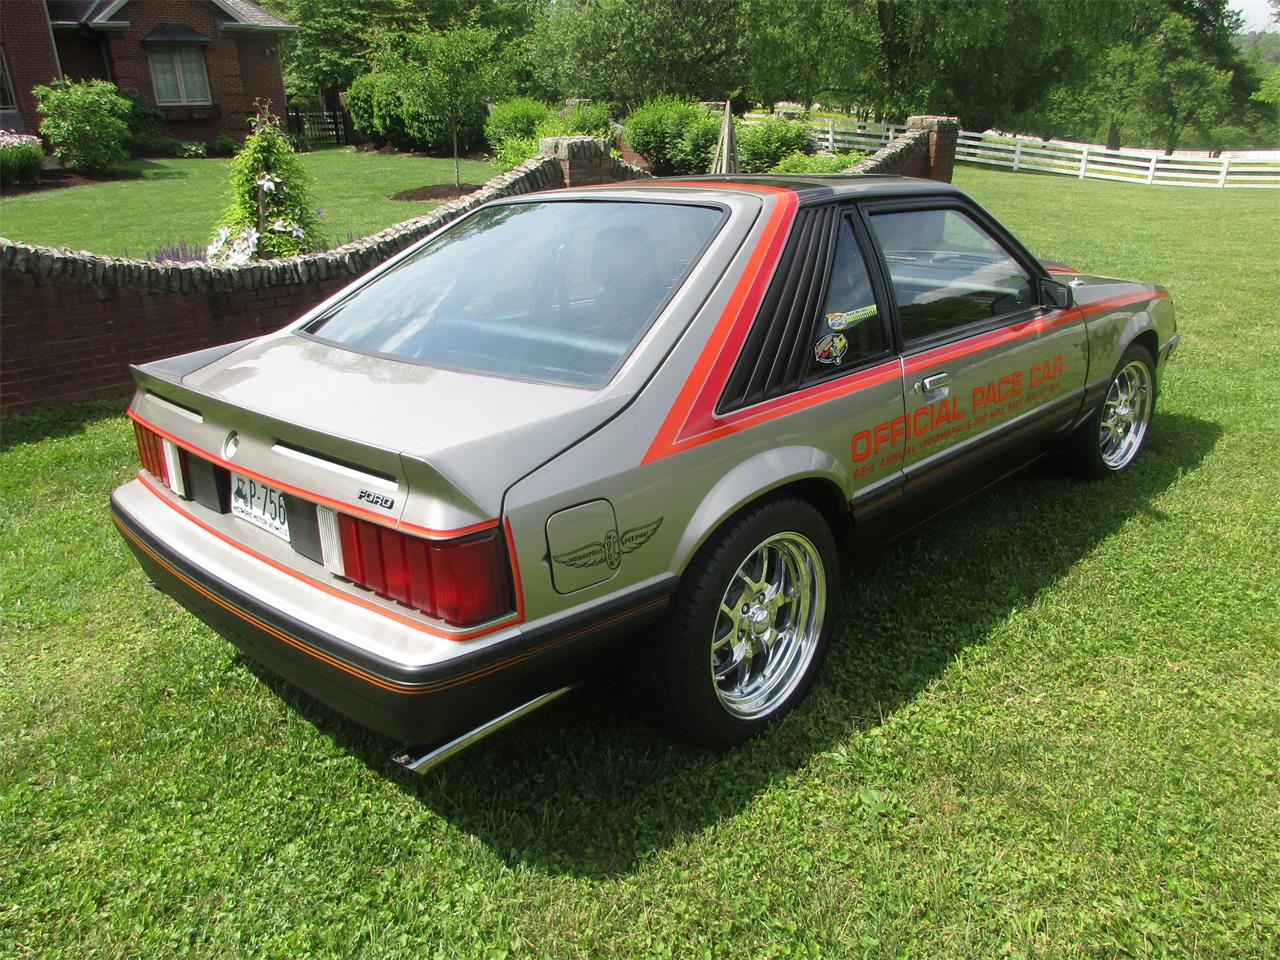 Large Picture of '79 Ford Mustang located in Somerset Kentucky - $29,500.00 Offered by a Private Seller - Q2ZG